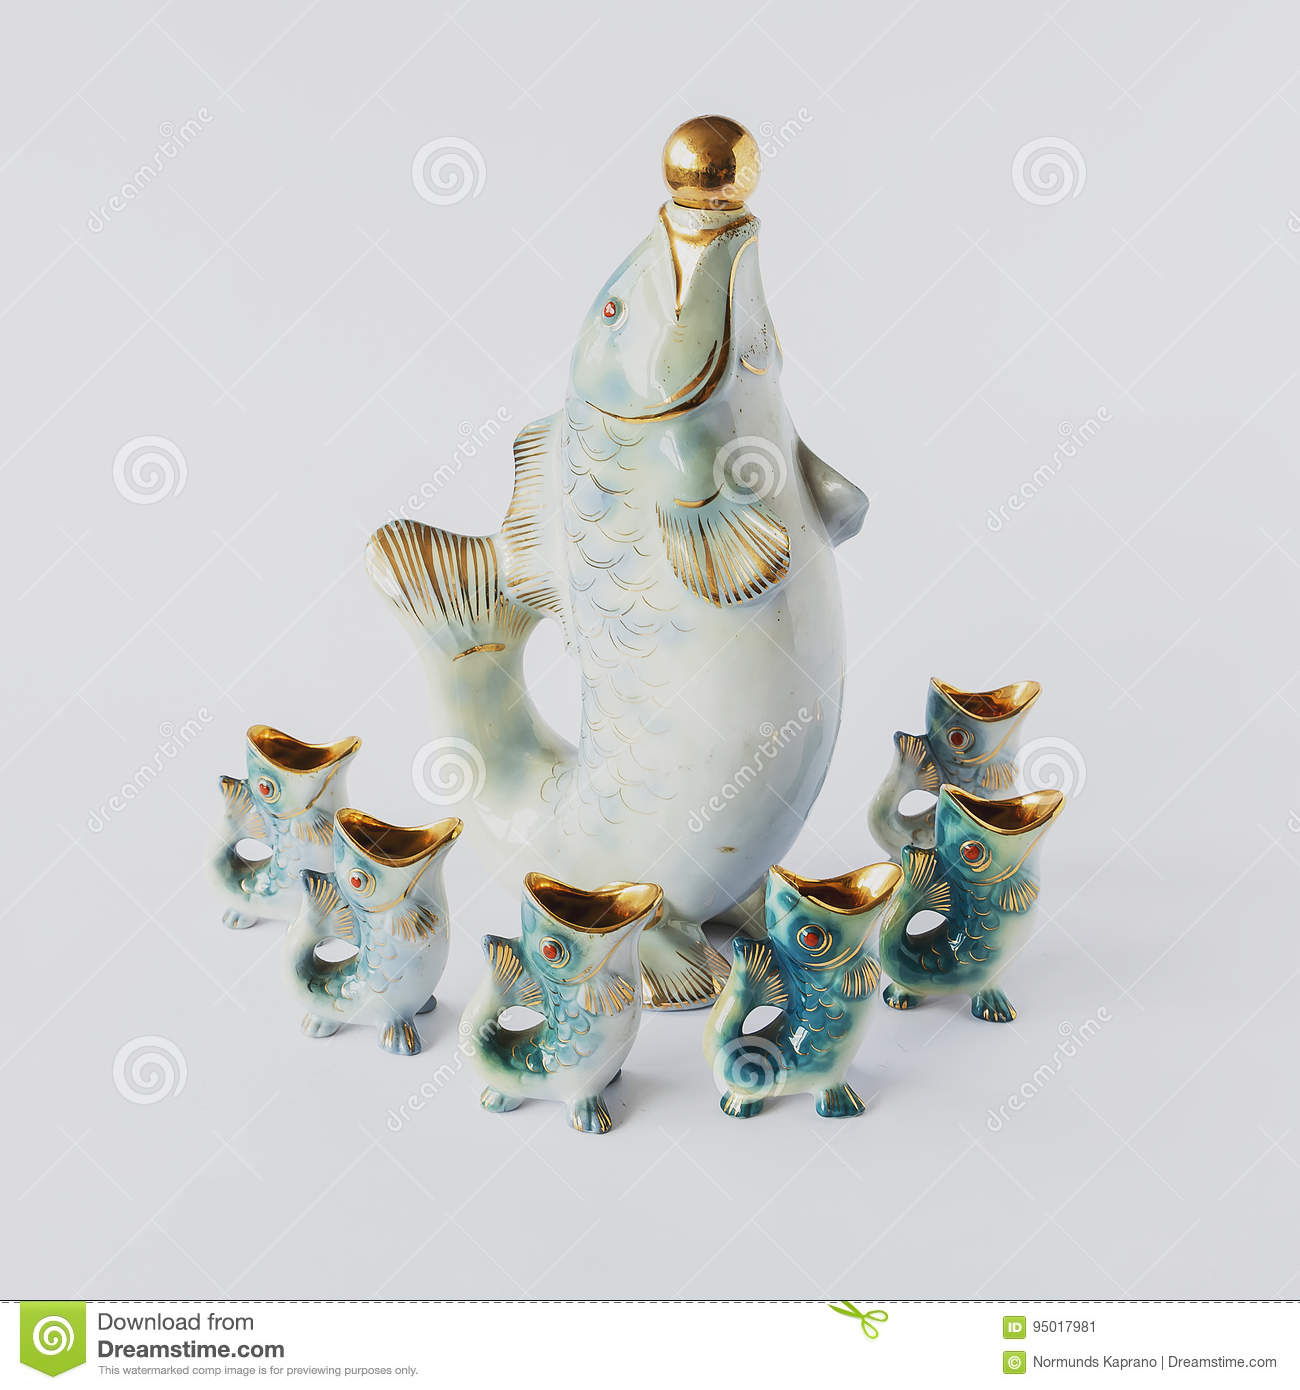 Old ceramic figurines on a white background